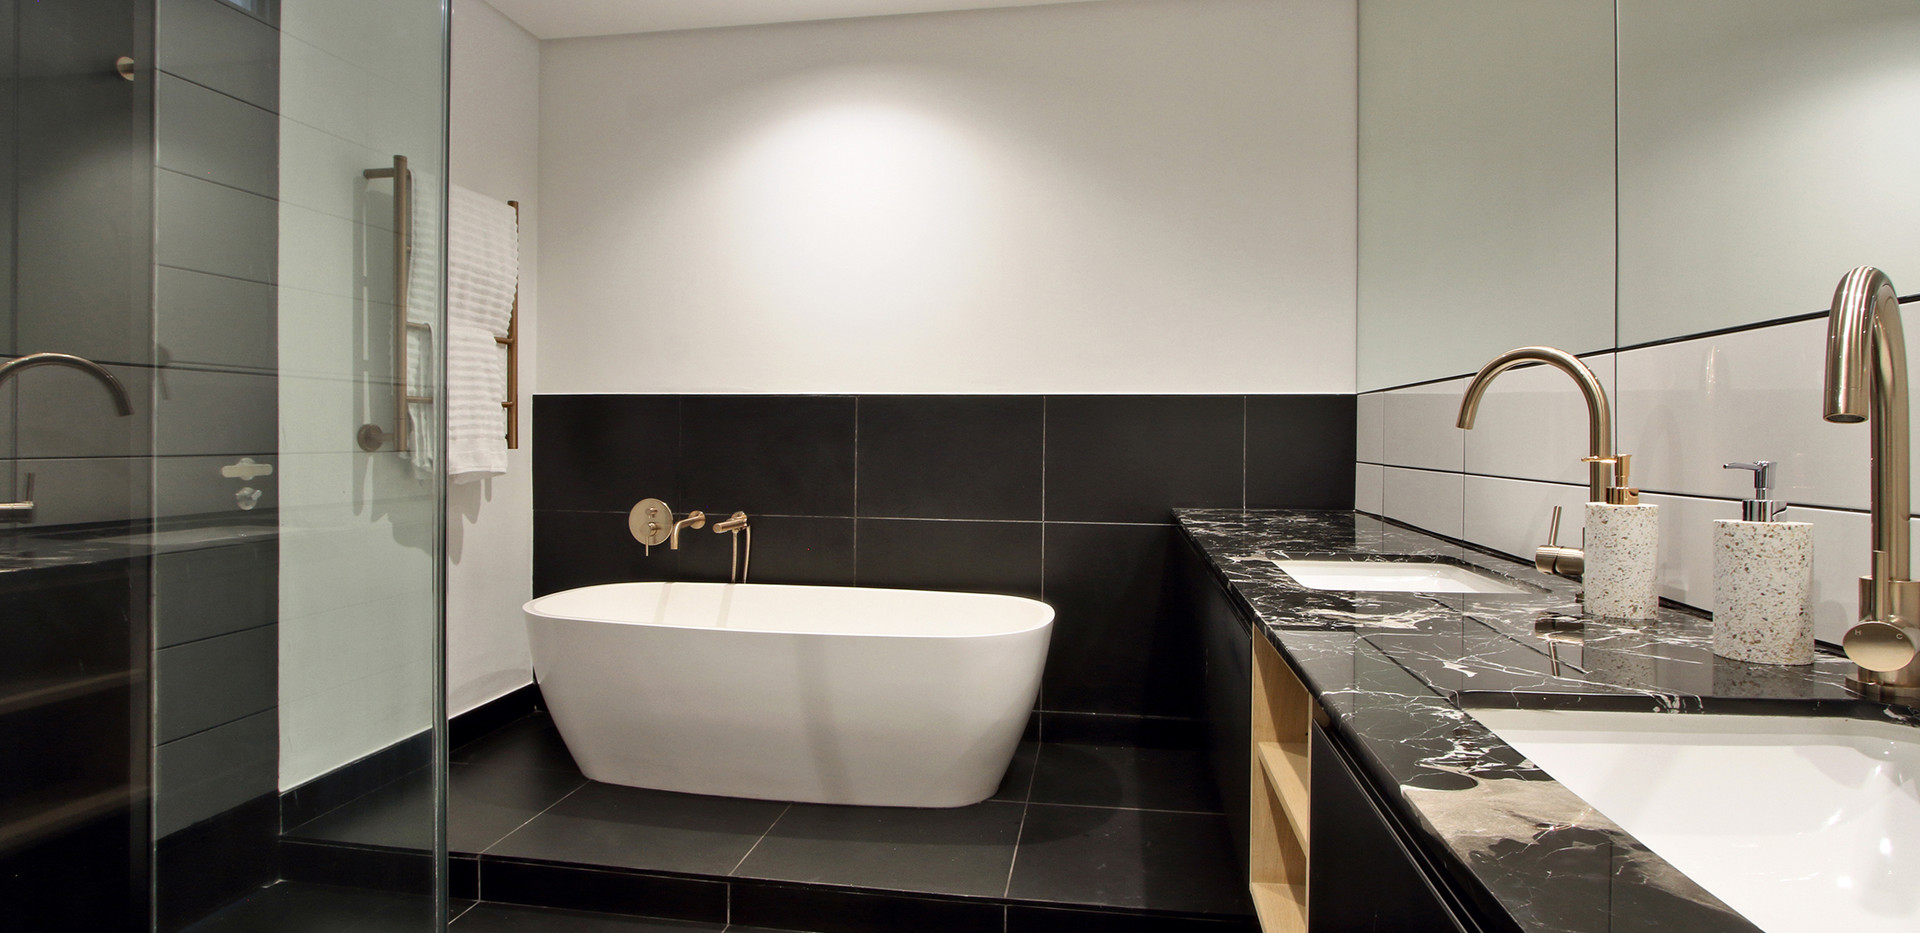 bathroom_Pentouse_Onyx_1106_ITC_4.jpg